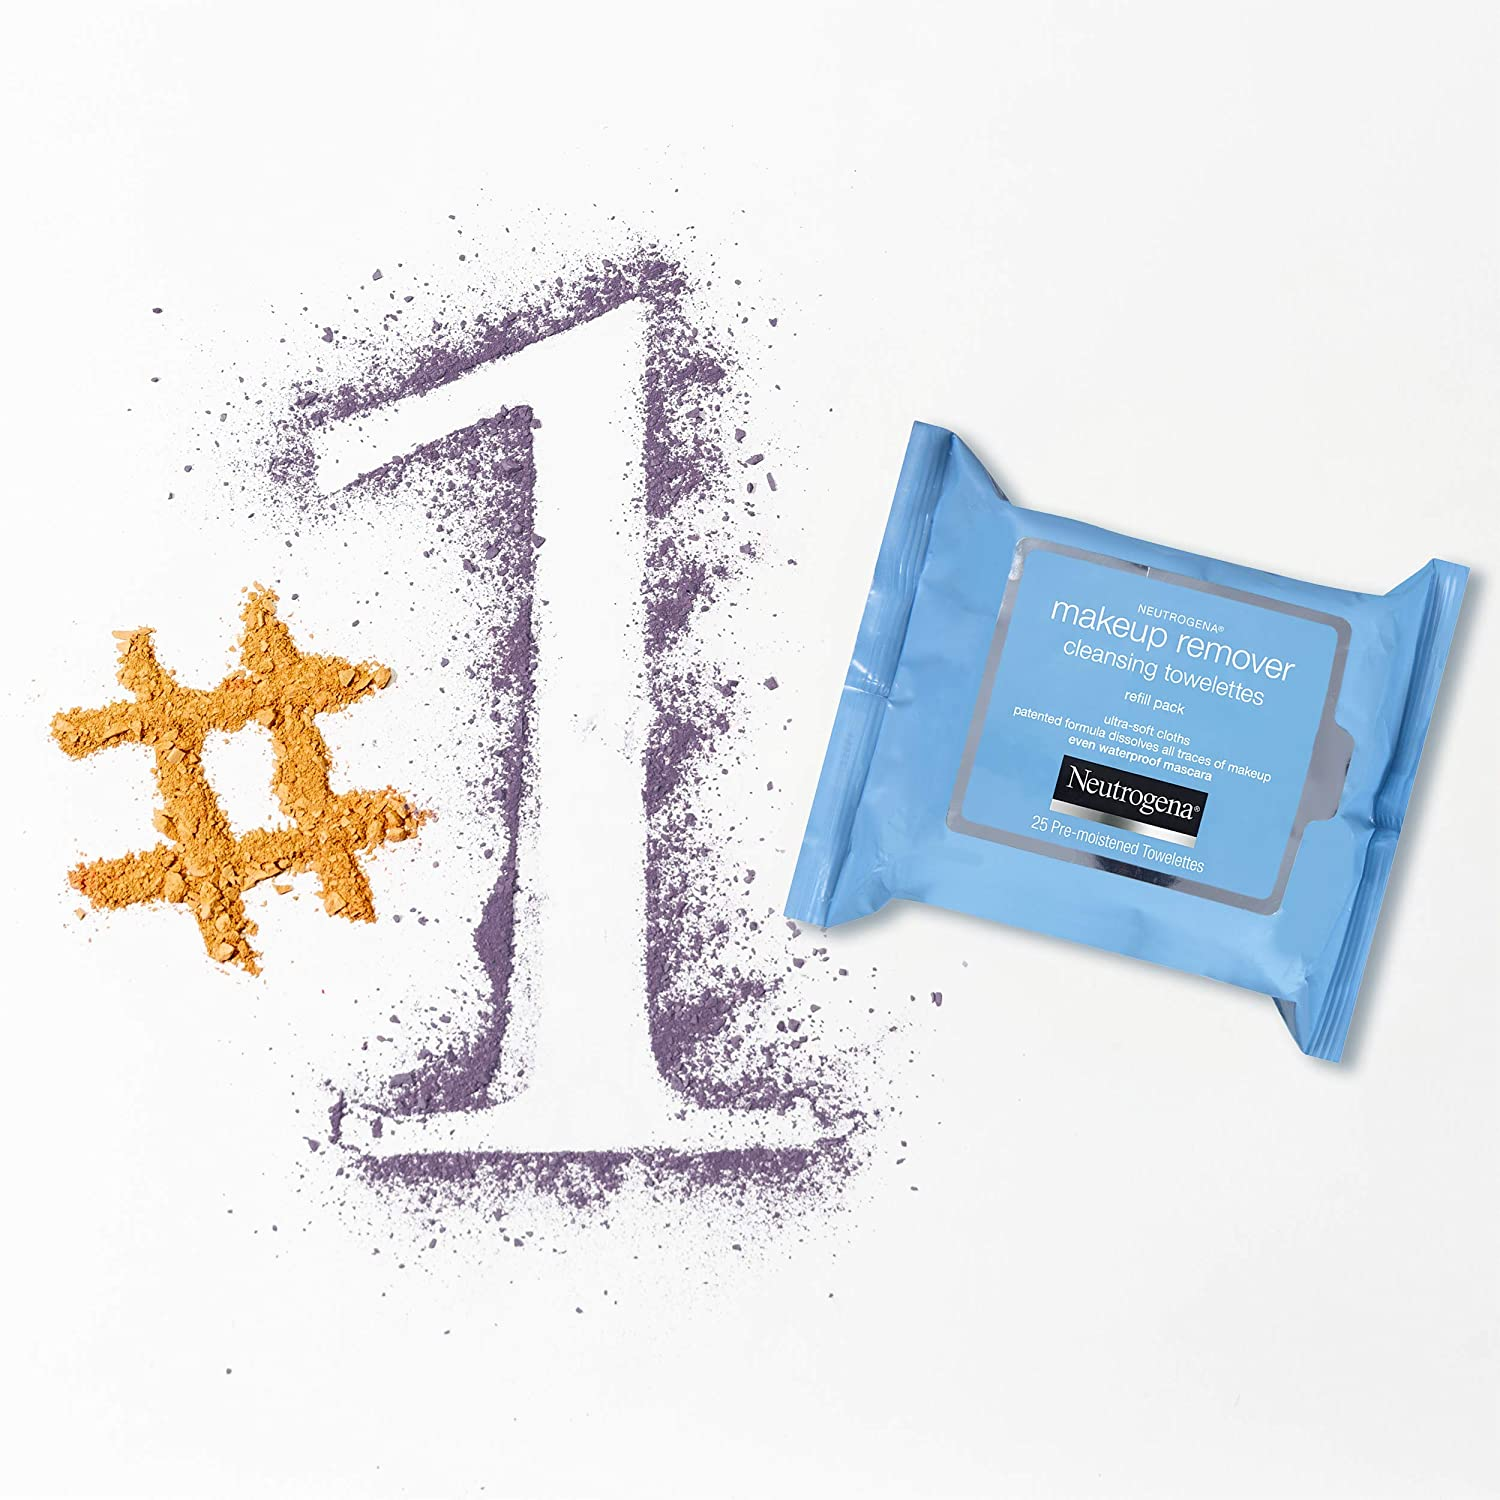 Amazon.com : Neutrogena Makeup Remover Cleansing Towelettes, Daily Face Wipes to Remove Dirt, Oil, Makeup & Waterproof Mascara, 25 ct (Pack of 3) : Beauty